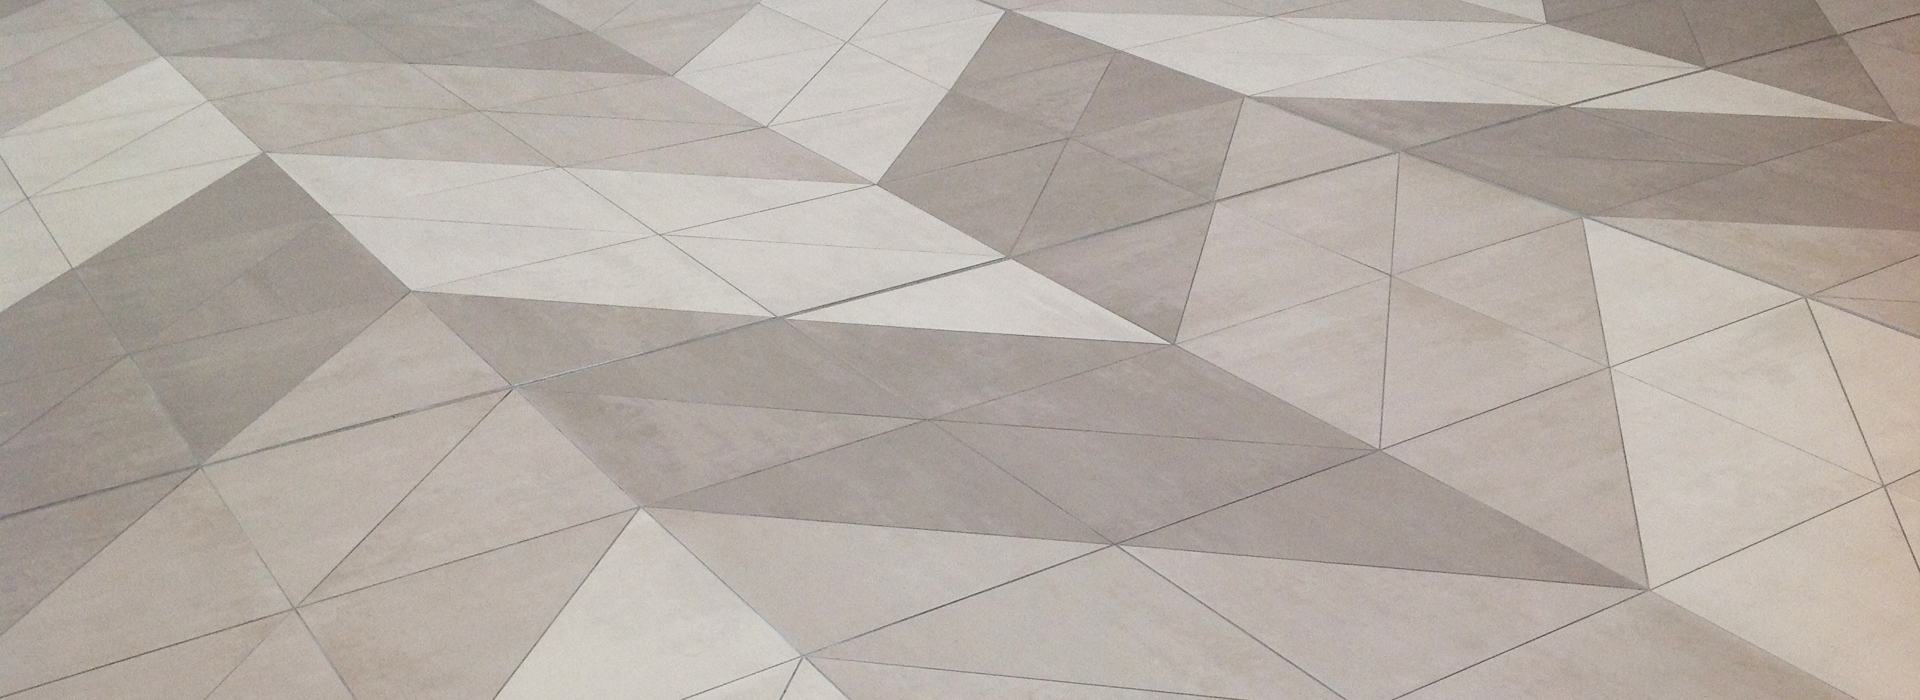 Mosa Tiles Ceramic Tile Solutions For Architectural Designs